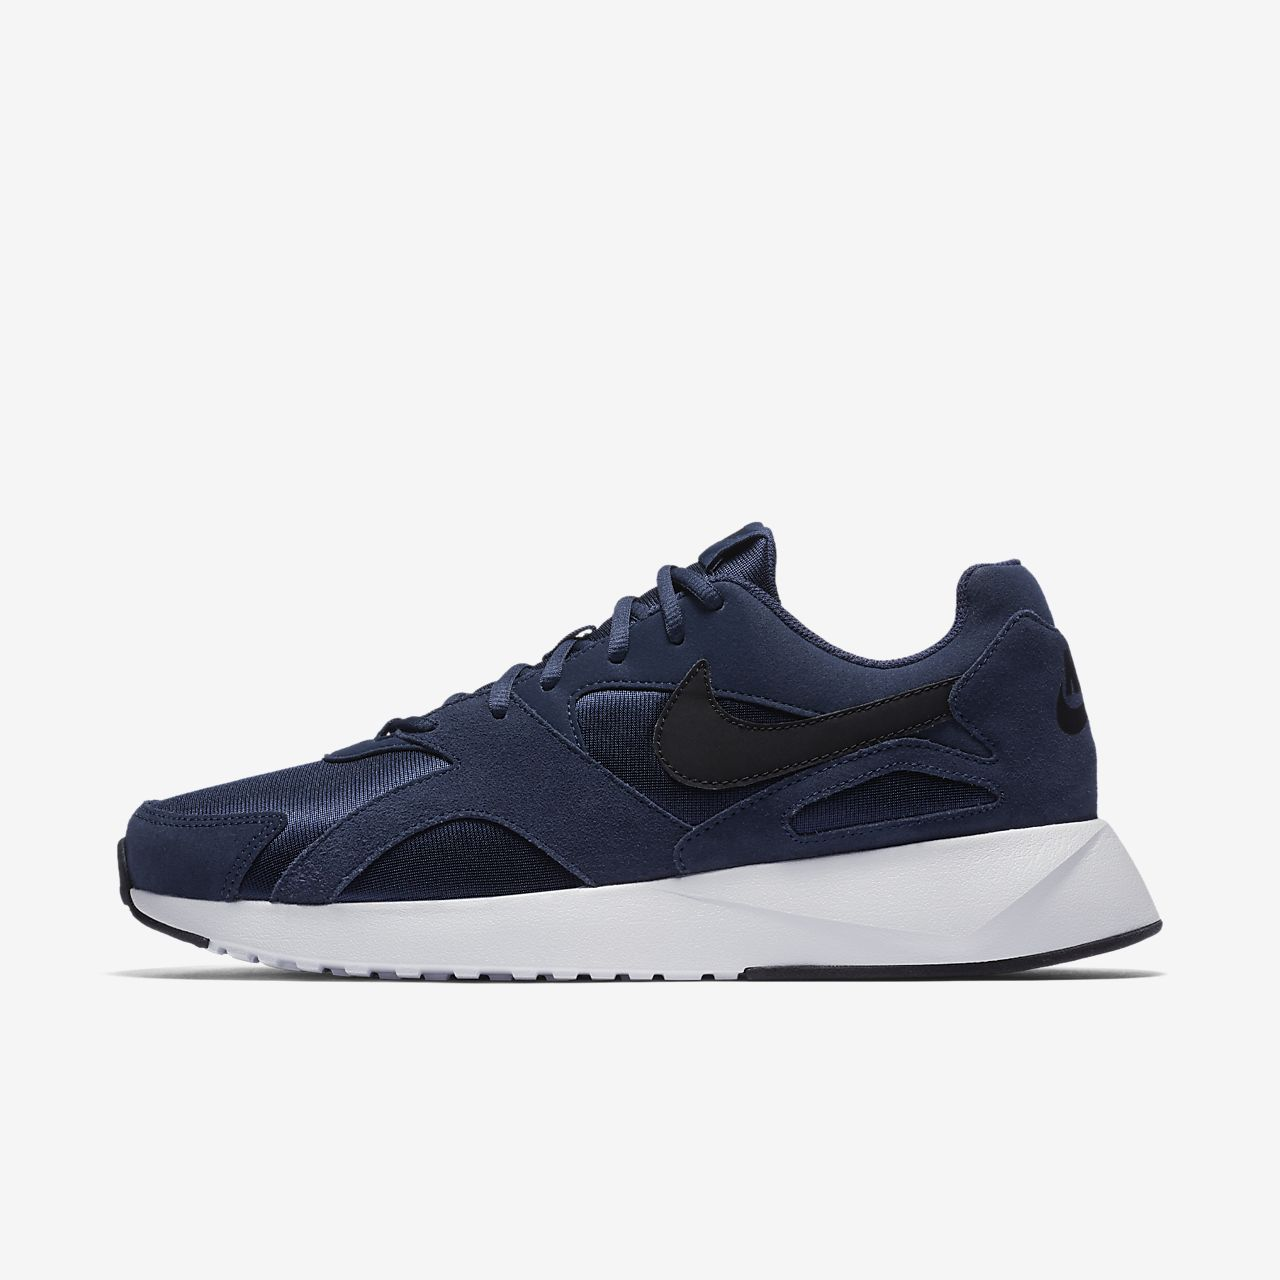 ... Chaussure Nike Pantheos pour Homme